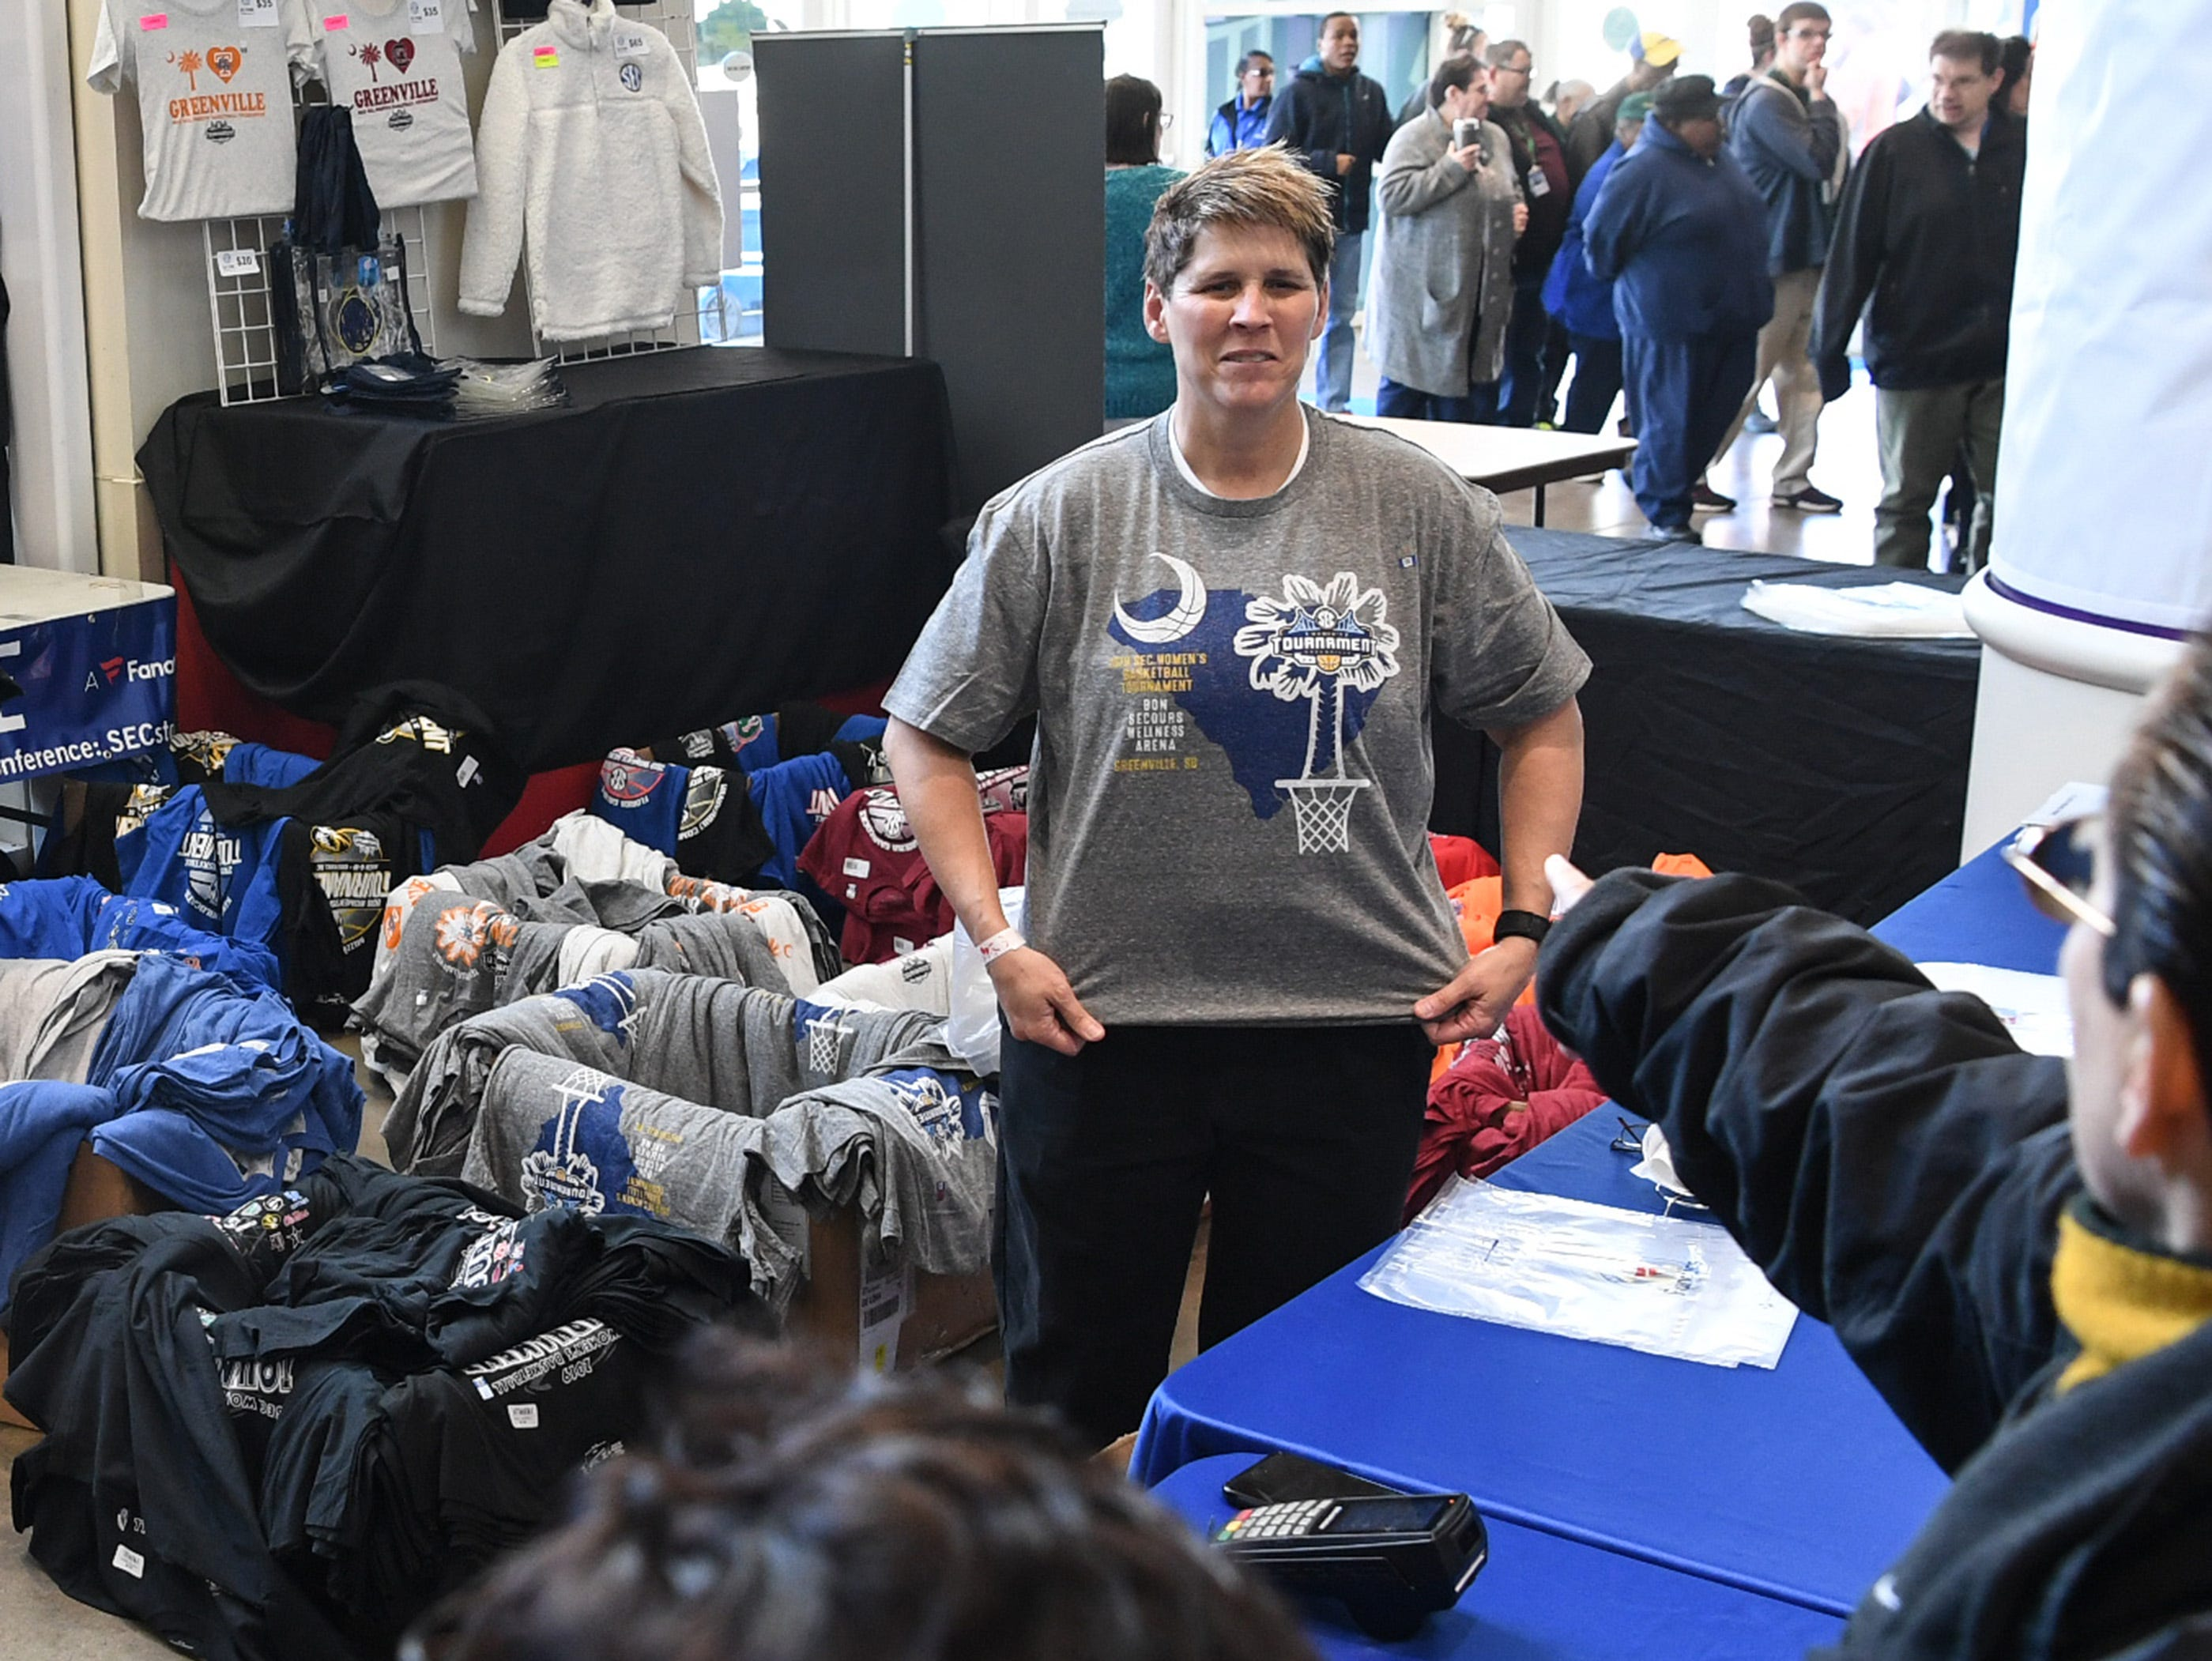 Kelly Lack of Woodruff shows off a SEC t-shirt for sale to fans before the first SEC Women's basketball tournament game, Ole Miss and Florida, in Greenville Wednesday. The tournament lasts through Sunday.